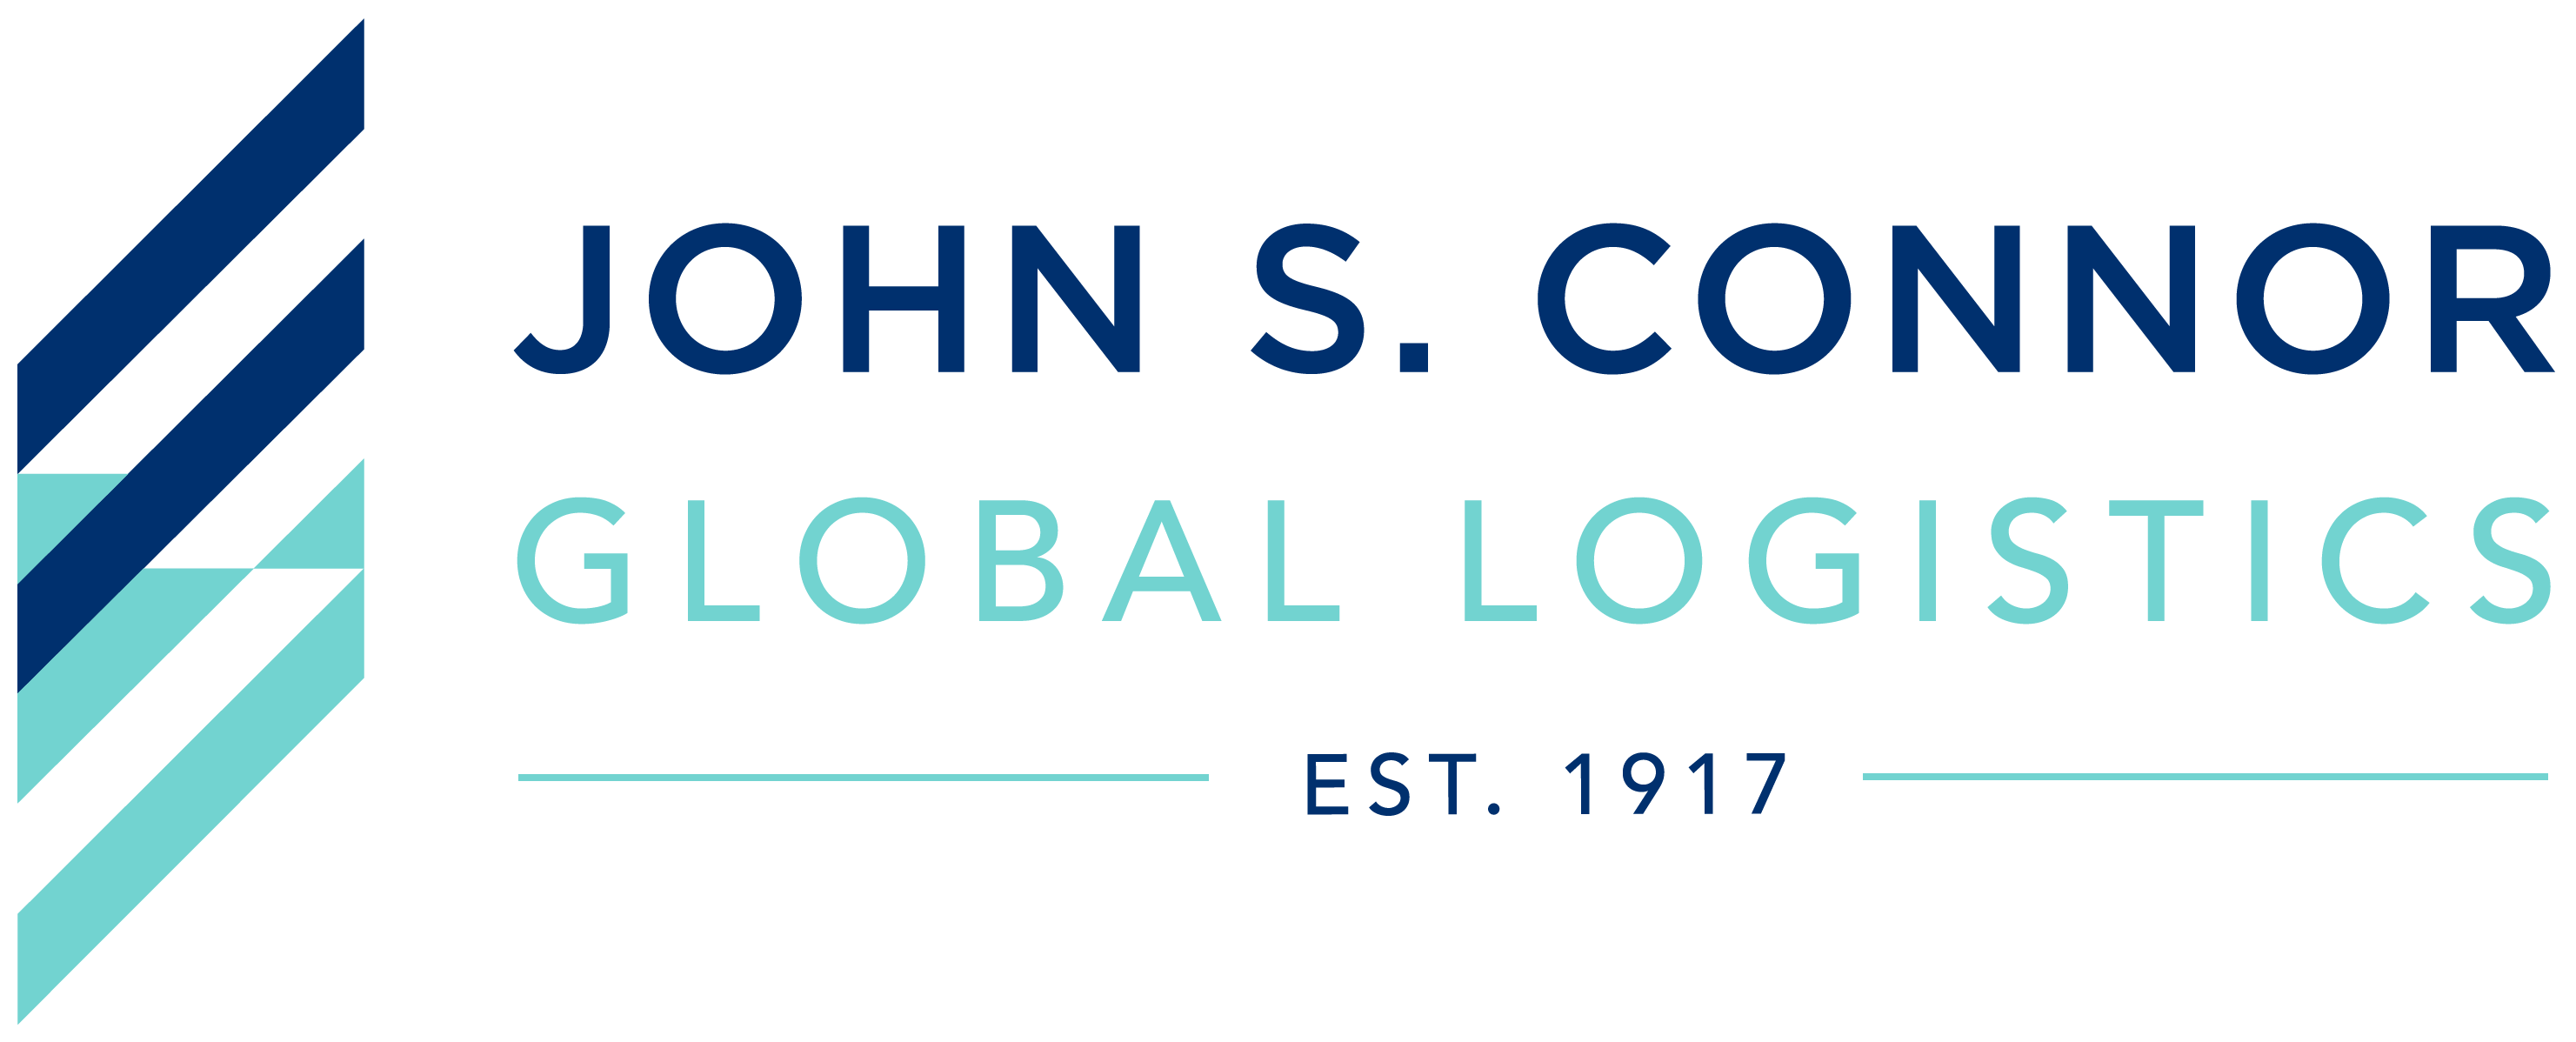 Company Name and Logo